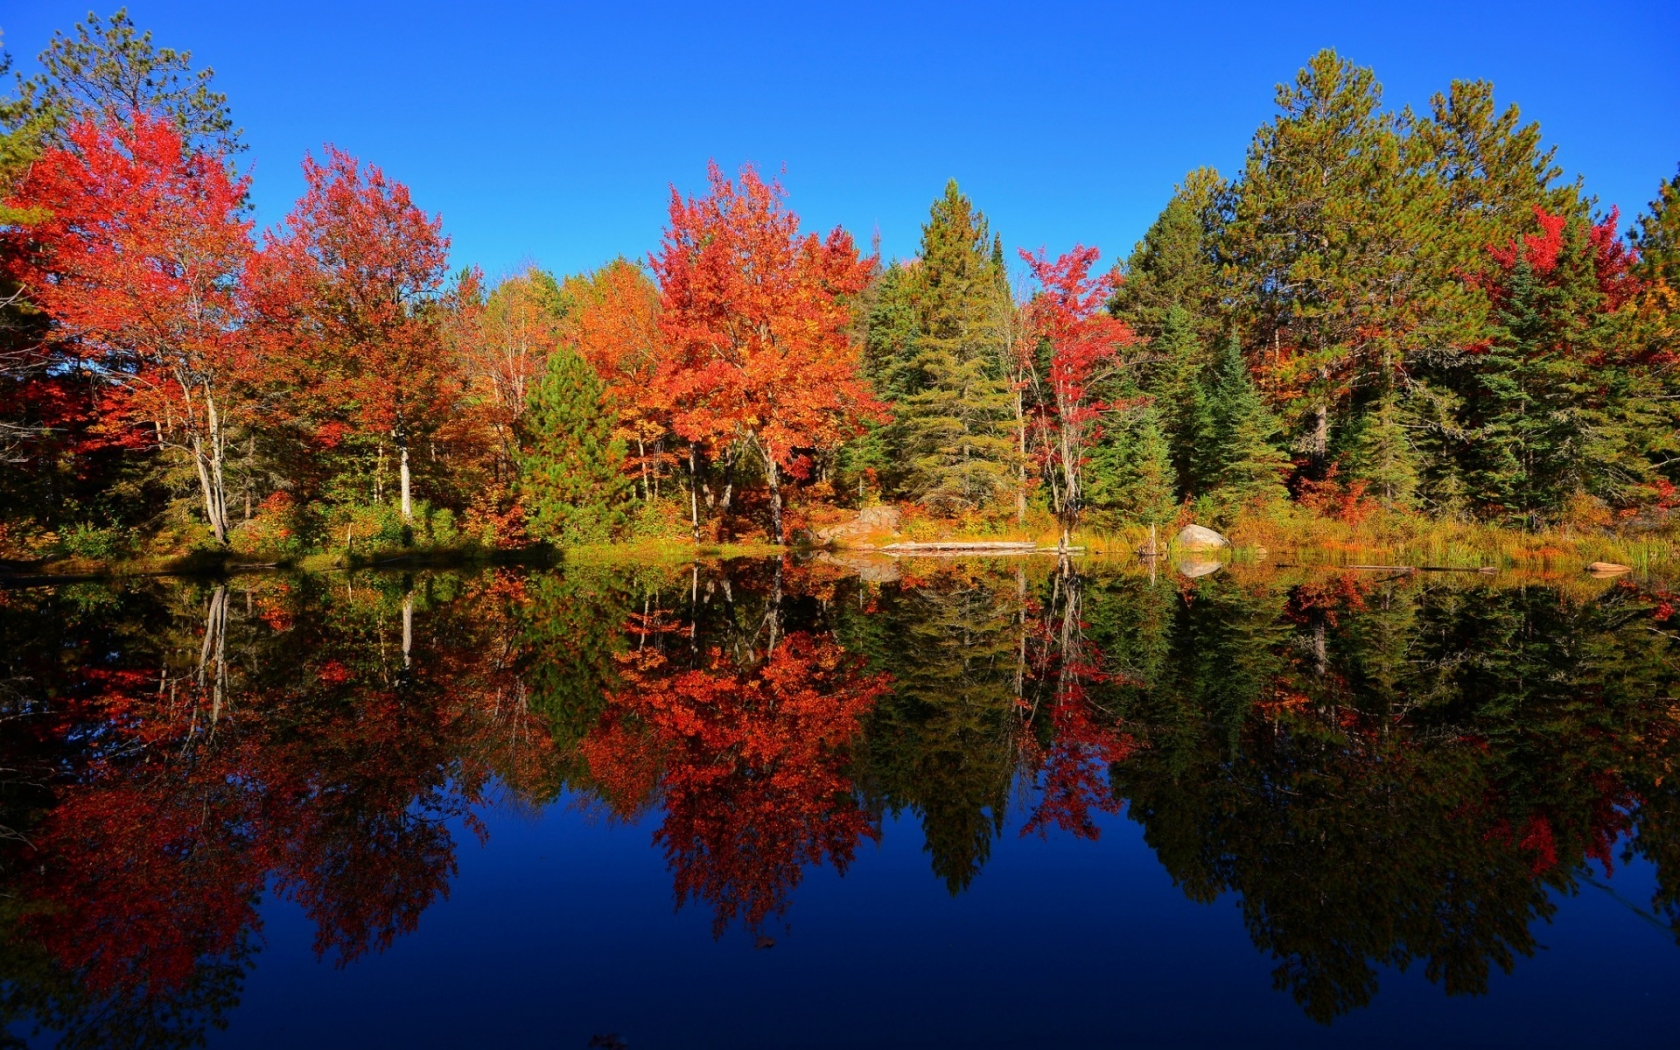 Colourful Forest Reflection for 1680 x 1050 widescreen resolution